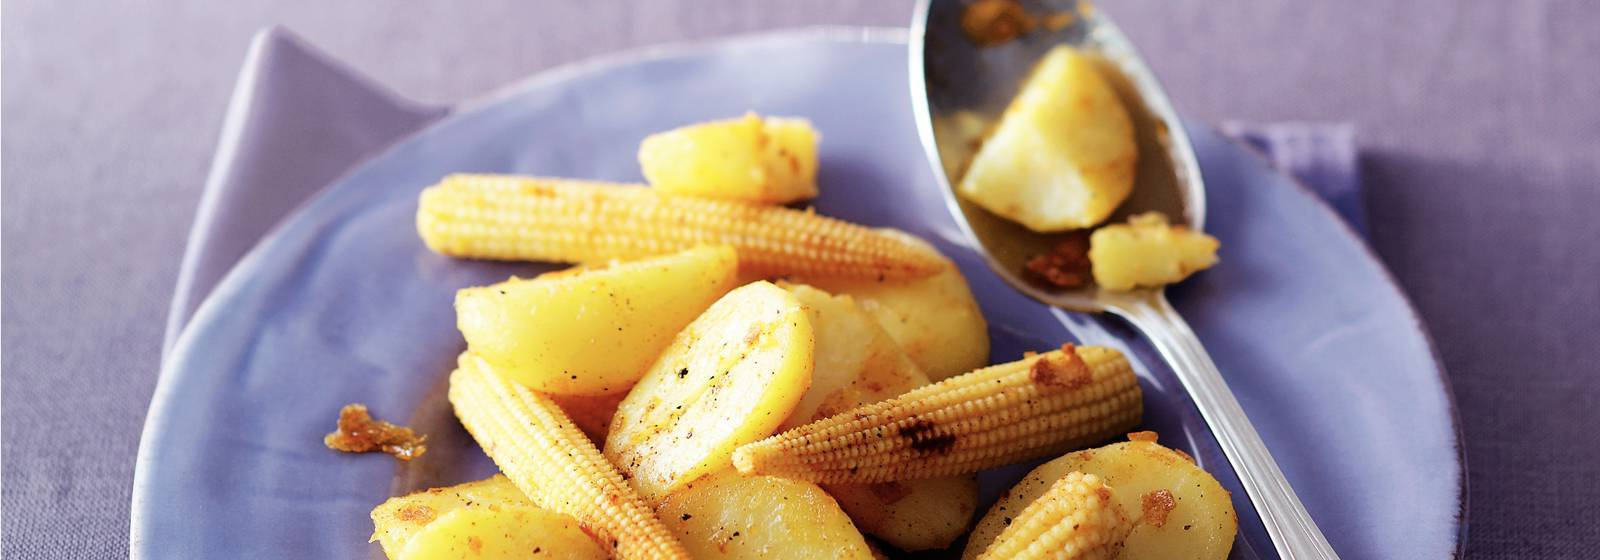 Potatoes with corn cobs